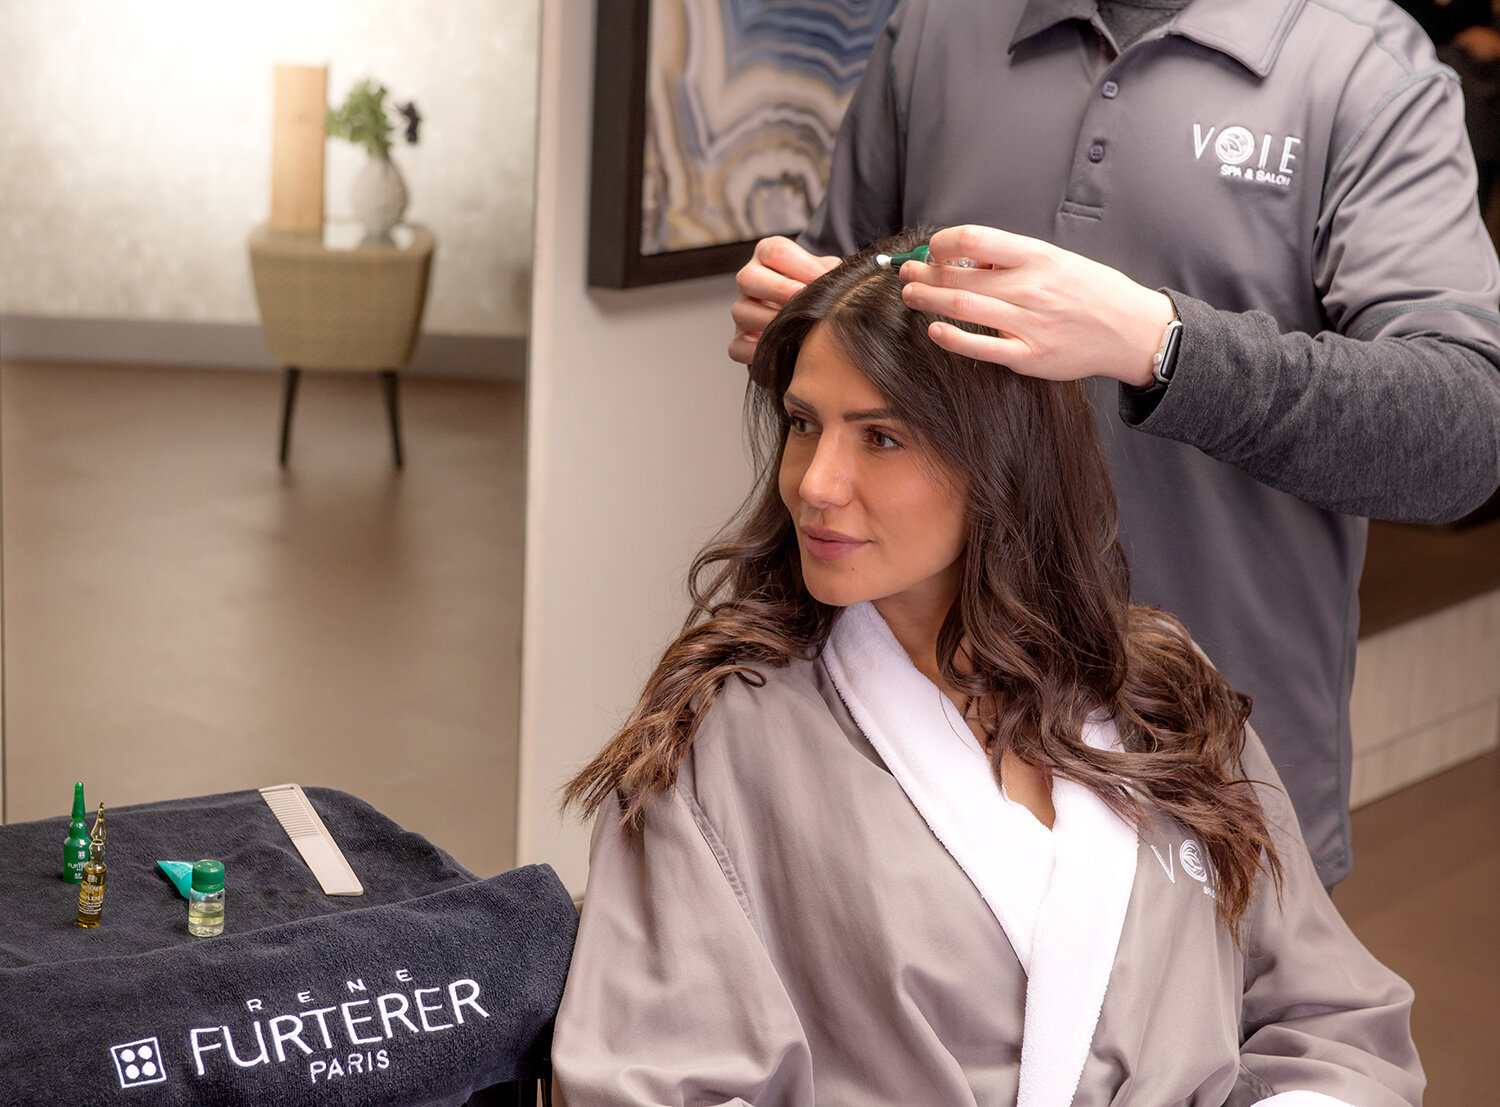 Voie Salon exclusively offers a variety of 20-minute hair rituals using René Furterer's high-end French product line.